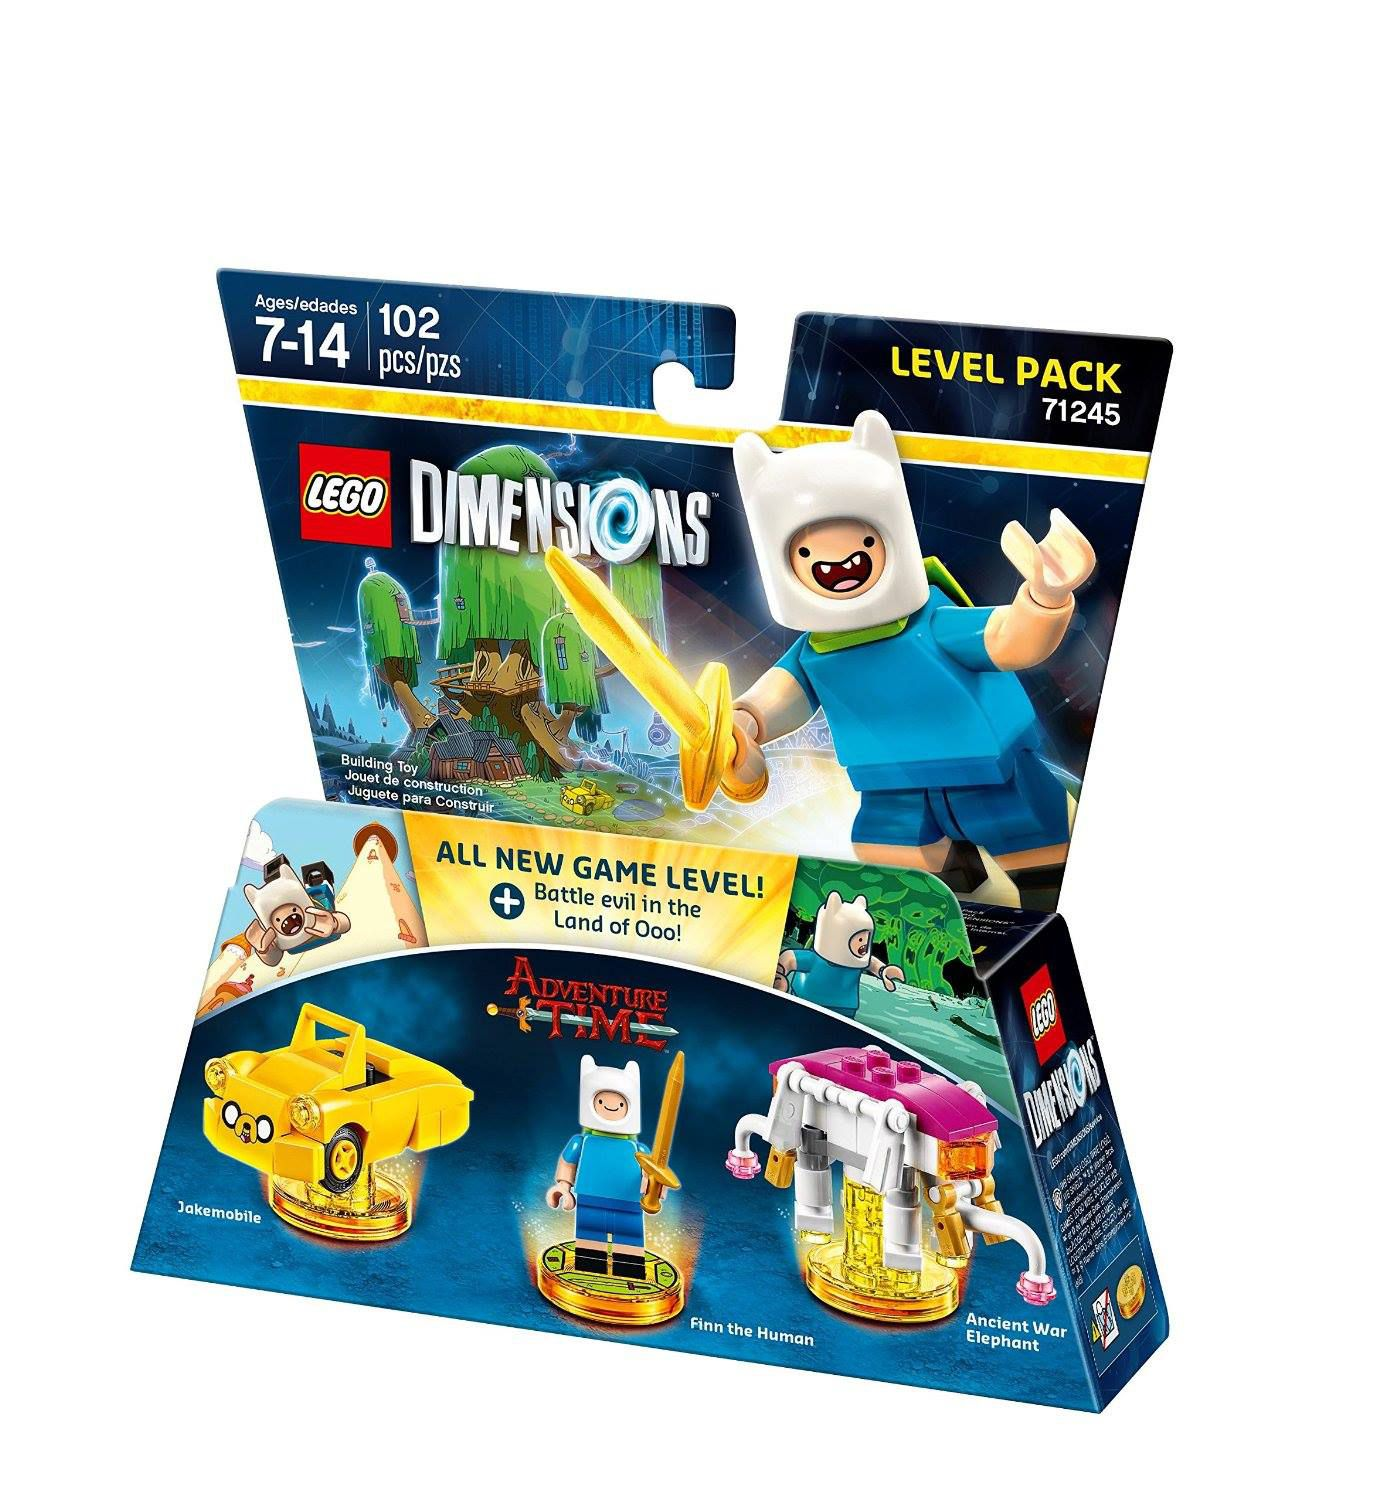 LEGO Dimensions 71245 Level Pack Adventure Time LEGO_DIMENSIONS_71245_Adventure-Time-03.jpg